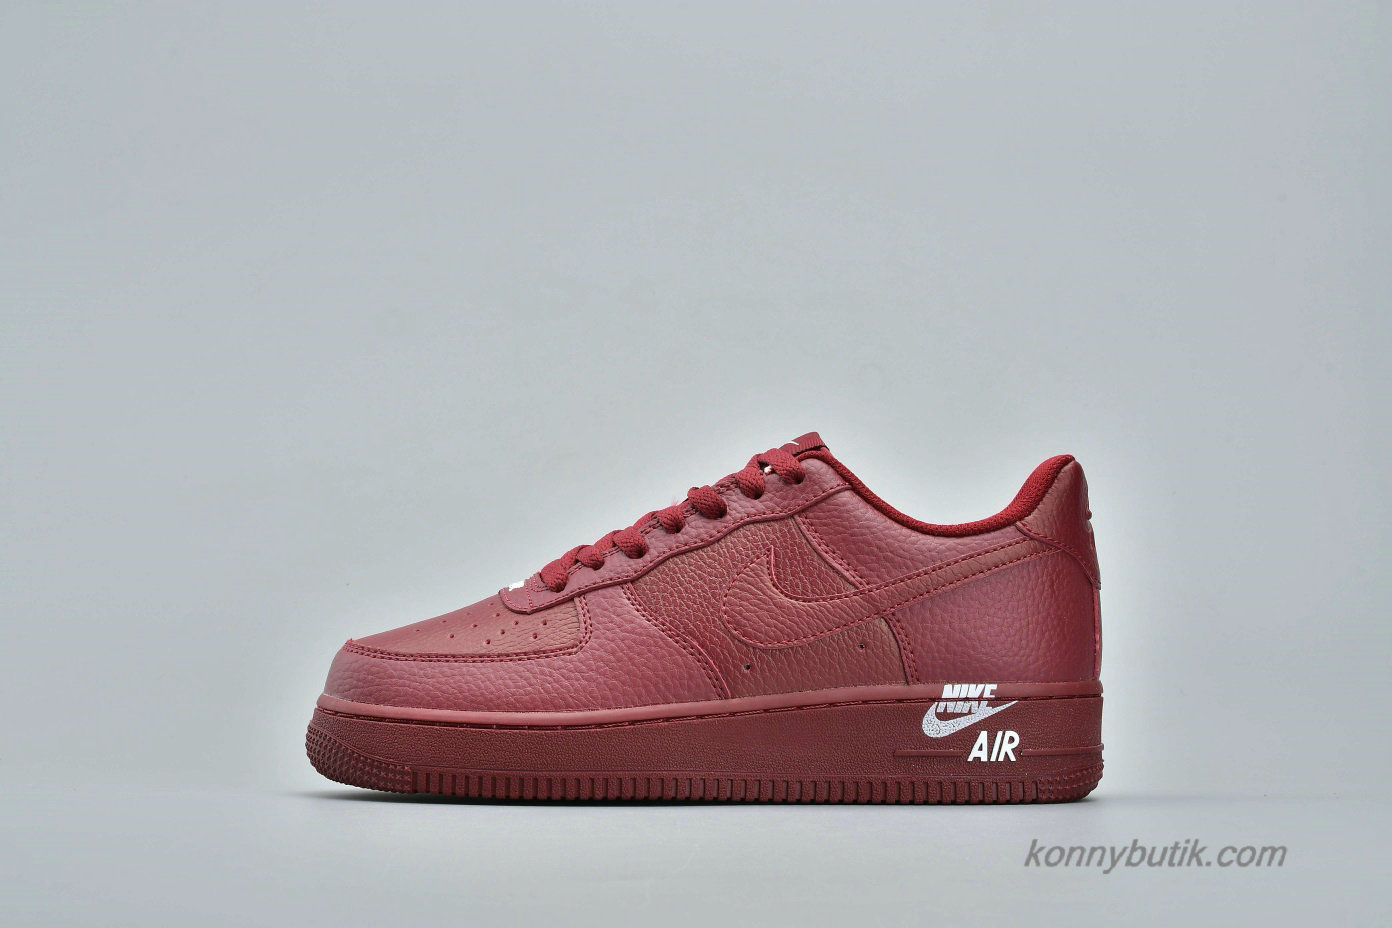 Nike Air Force 1 Low 07 LTHR Herre Sko Mørkerød (AJ7280-600)